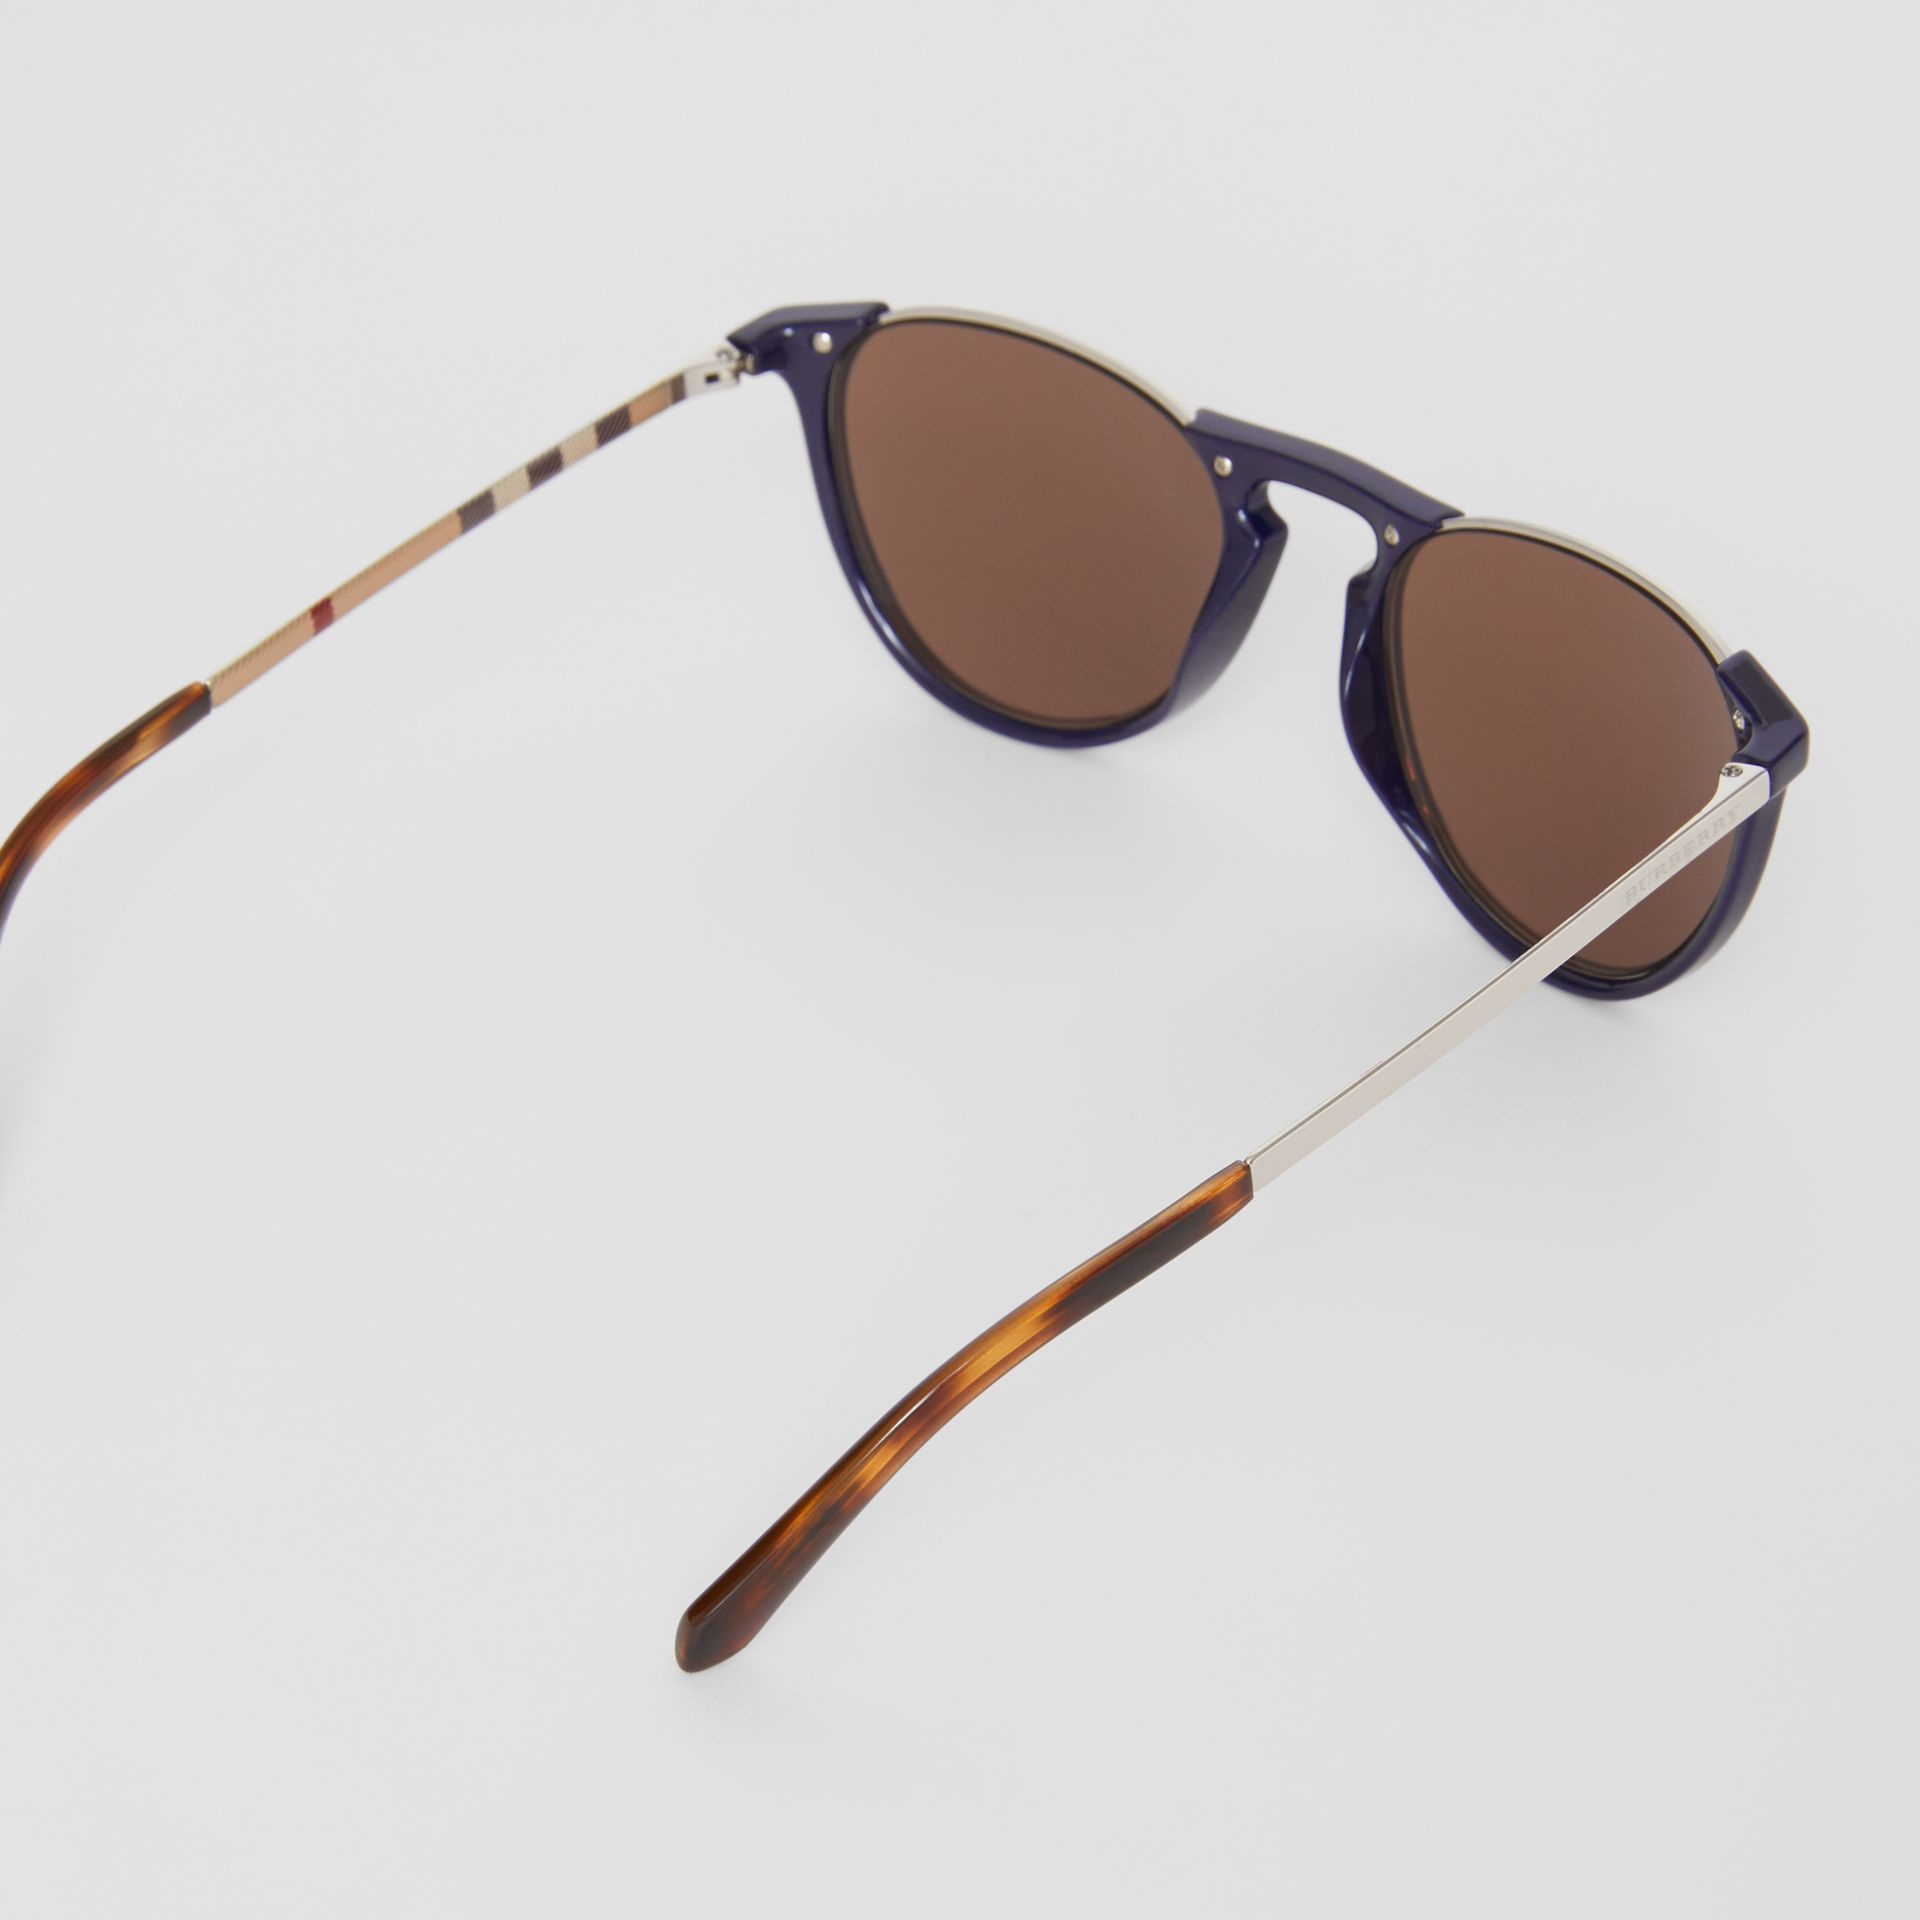 Keyhole Pilot Round Frame Sunglasses in Blue - Men | Burberry United States - gallery image 3